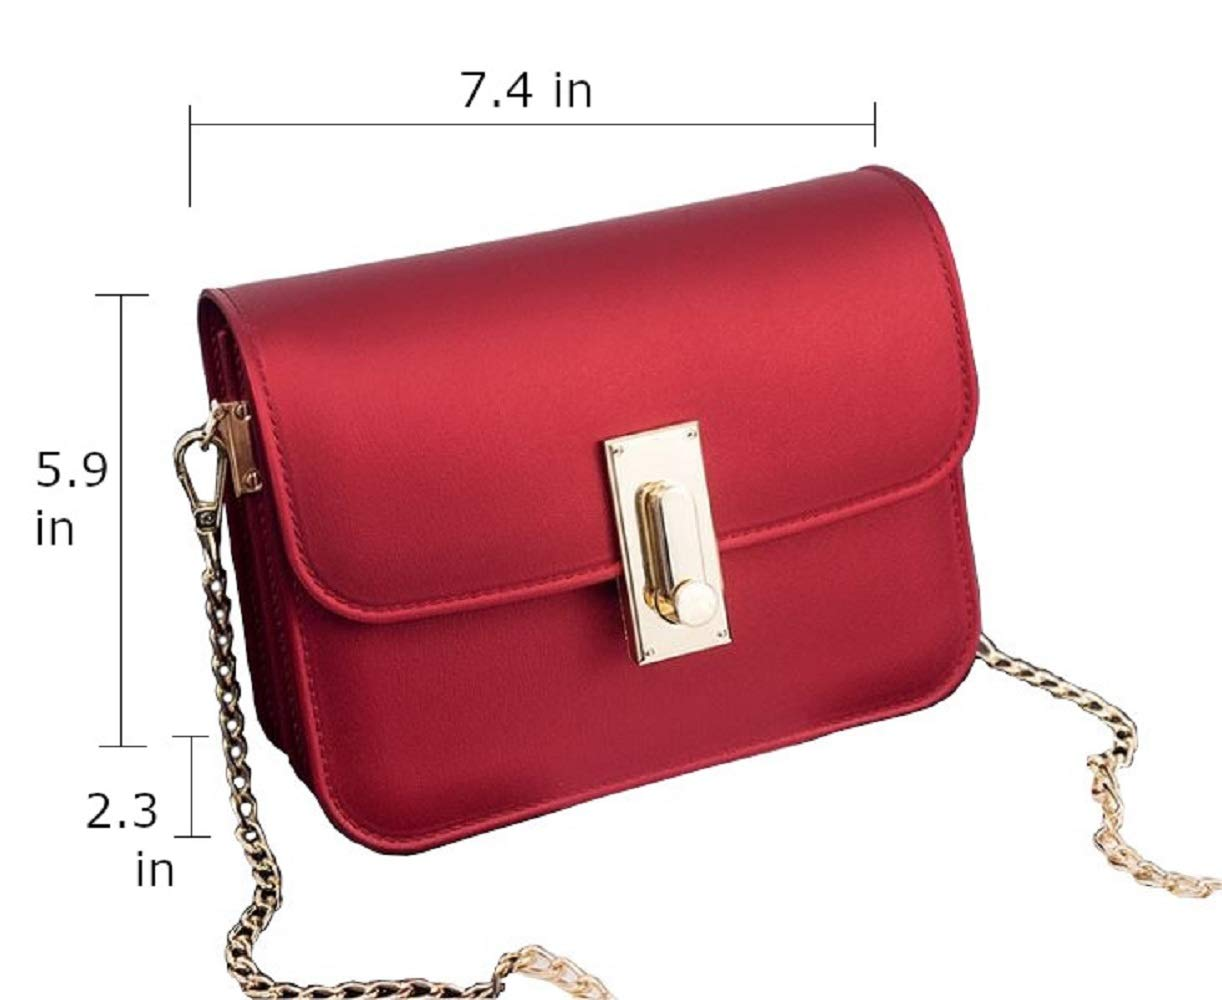 LF-JP PVC Evening bags for women [ Designer Clutch with Chain ] Shoulder Bag Cross body Purse (Red) by LF-JP (Image #3)